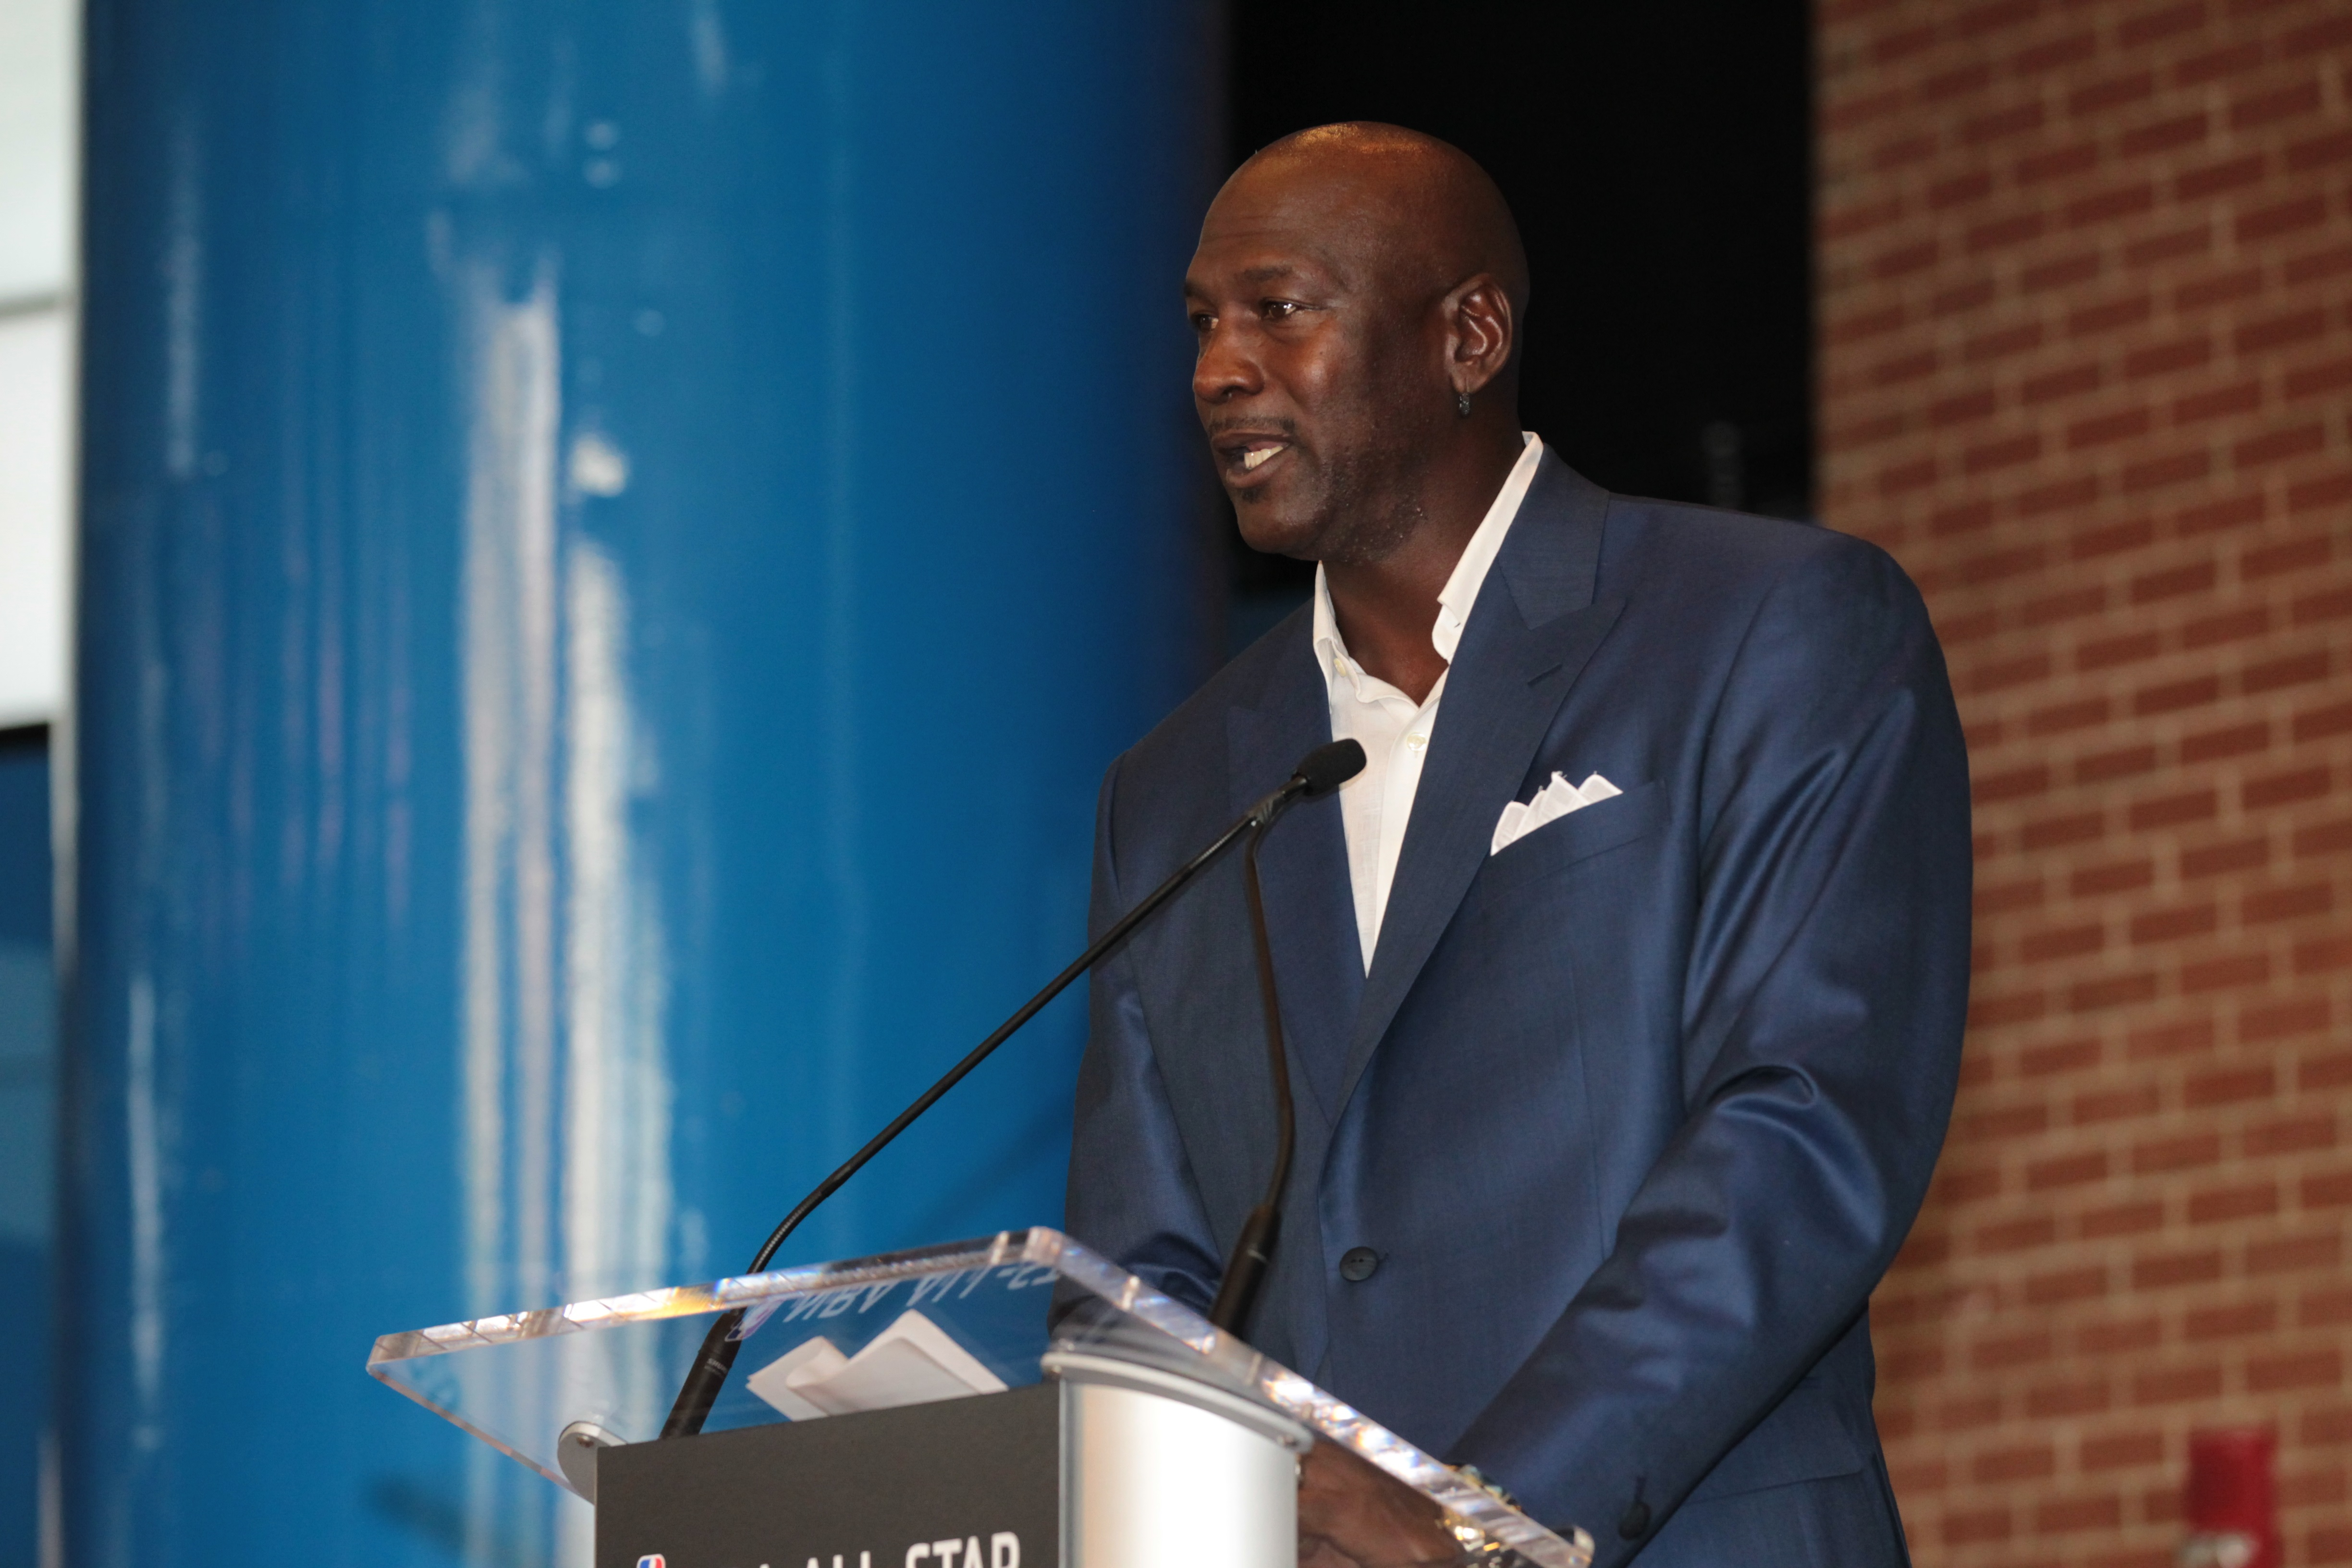 CHARLOTTE, NC - JUNE 23:  Michael Jordan owner of the Charlotte Hornets announces the 2017 All-Star game at the Time Warner Cable Arena on June 23, 2015 in Charlotte, North Carolina. (Photo by Kent Smith/NBAE via Getty Images)